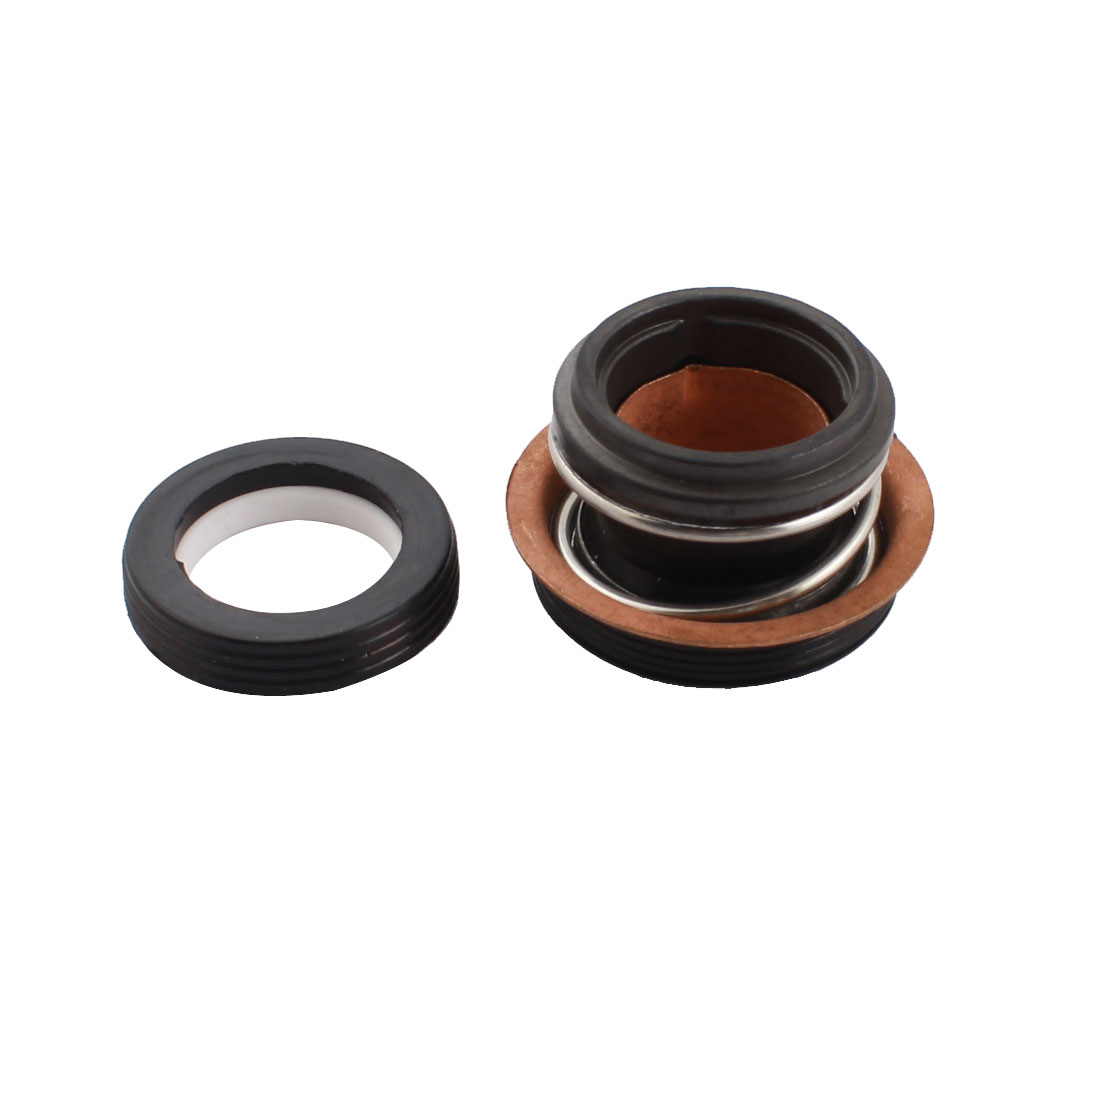 Home Water Pump 25mm Diameter Rubber Bellows Sealing Shaft Mechanical Seal